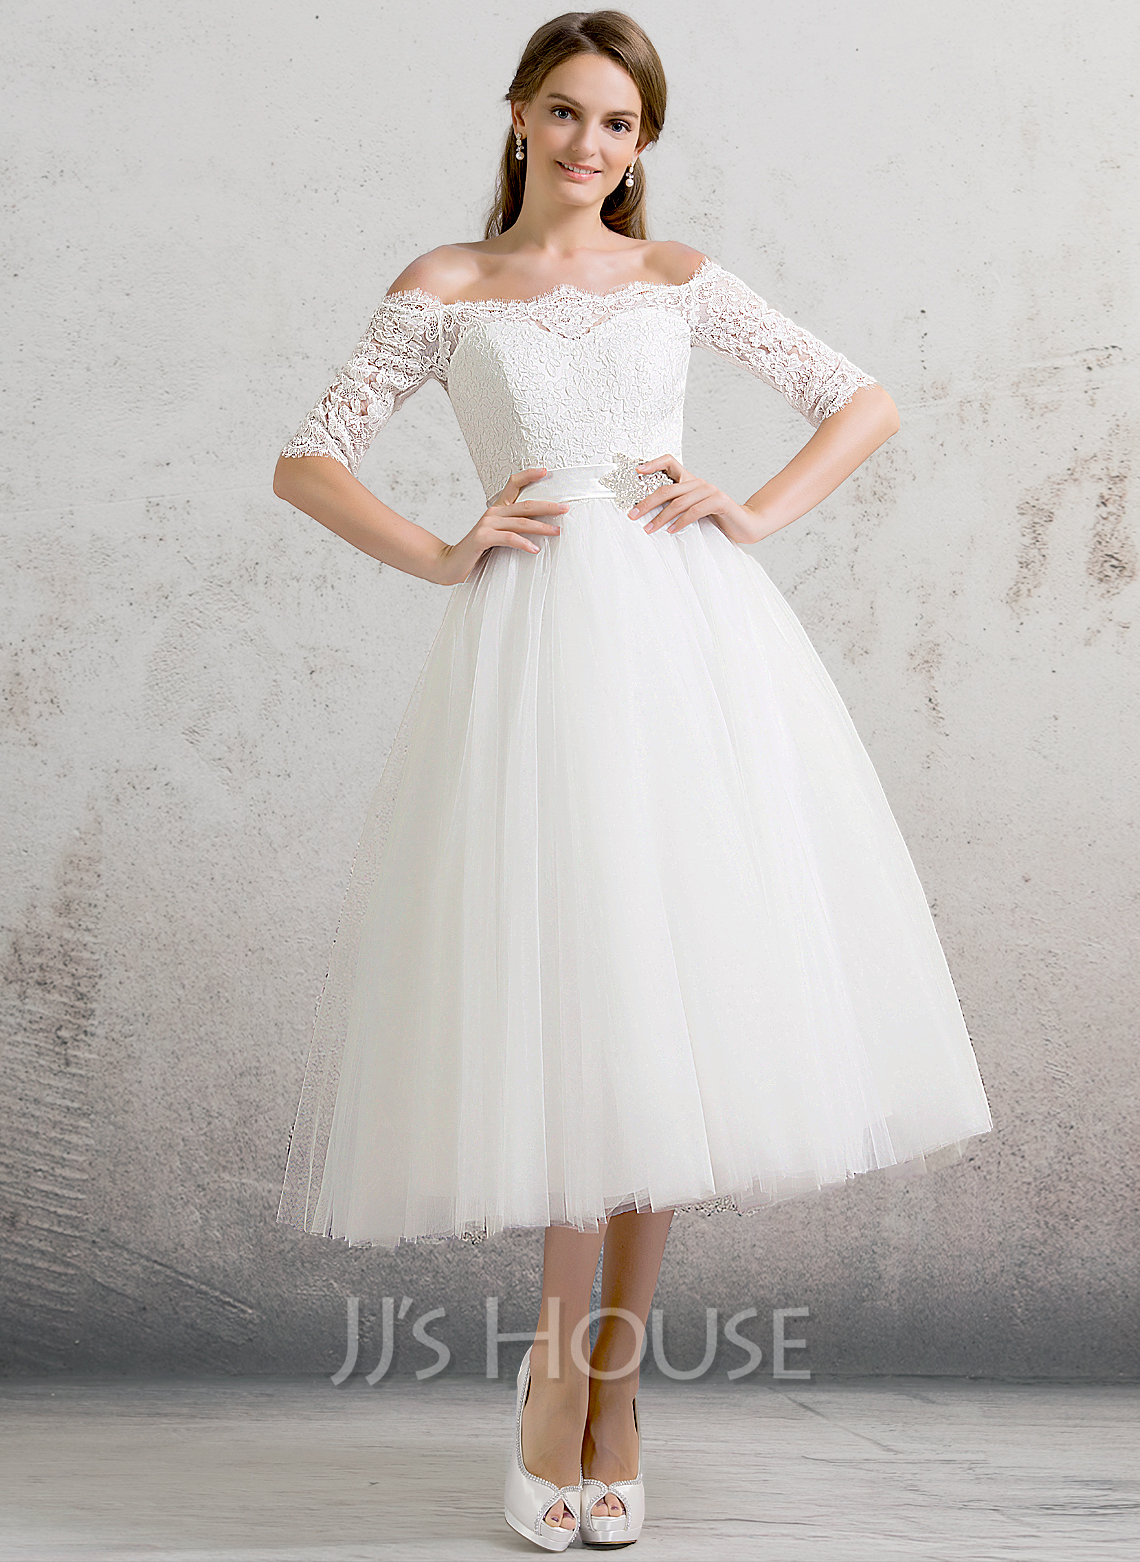 Ball Gown f the Shoulder Tea Length Tulle Wedding Dress